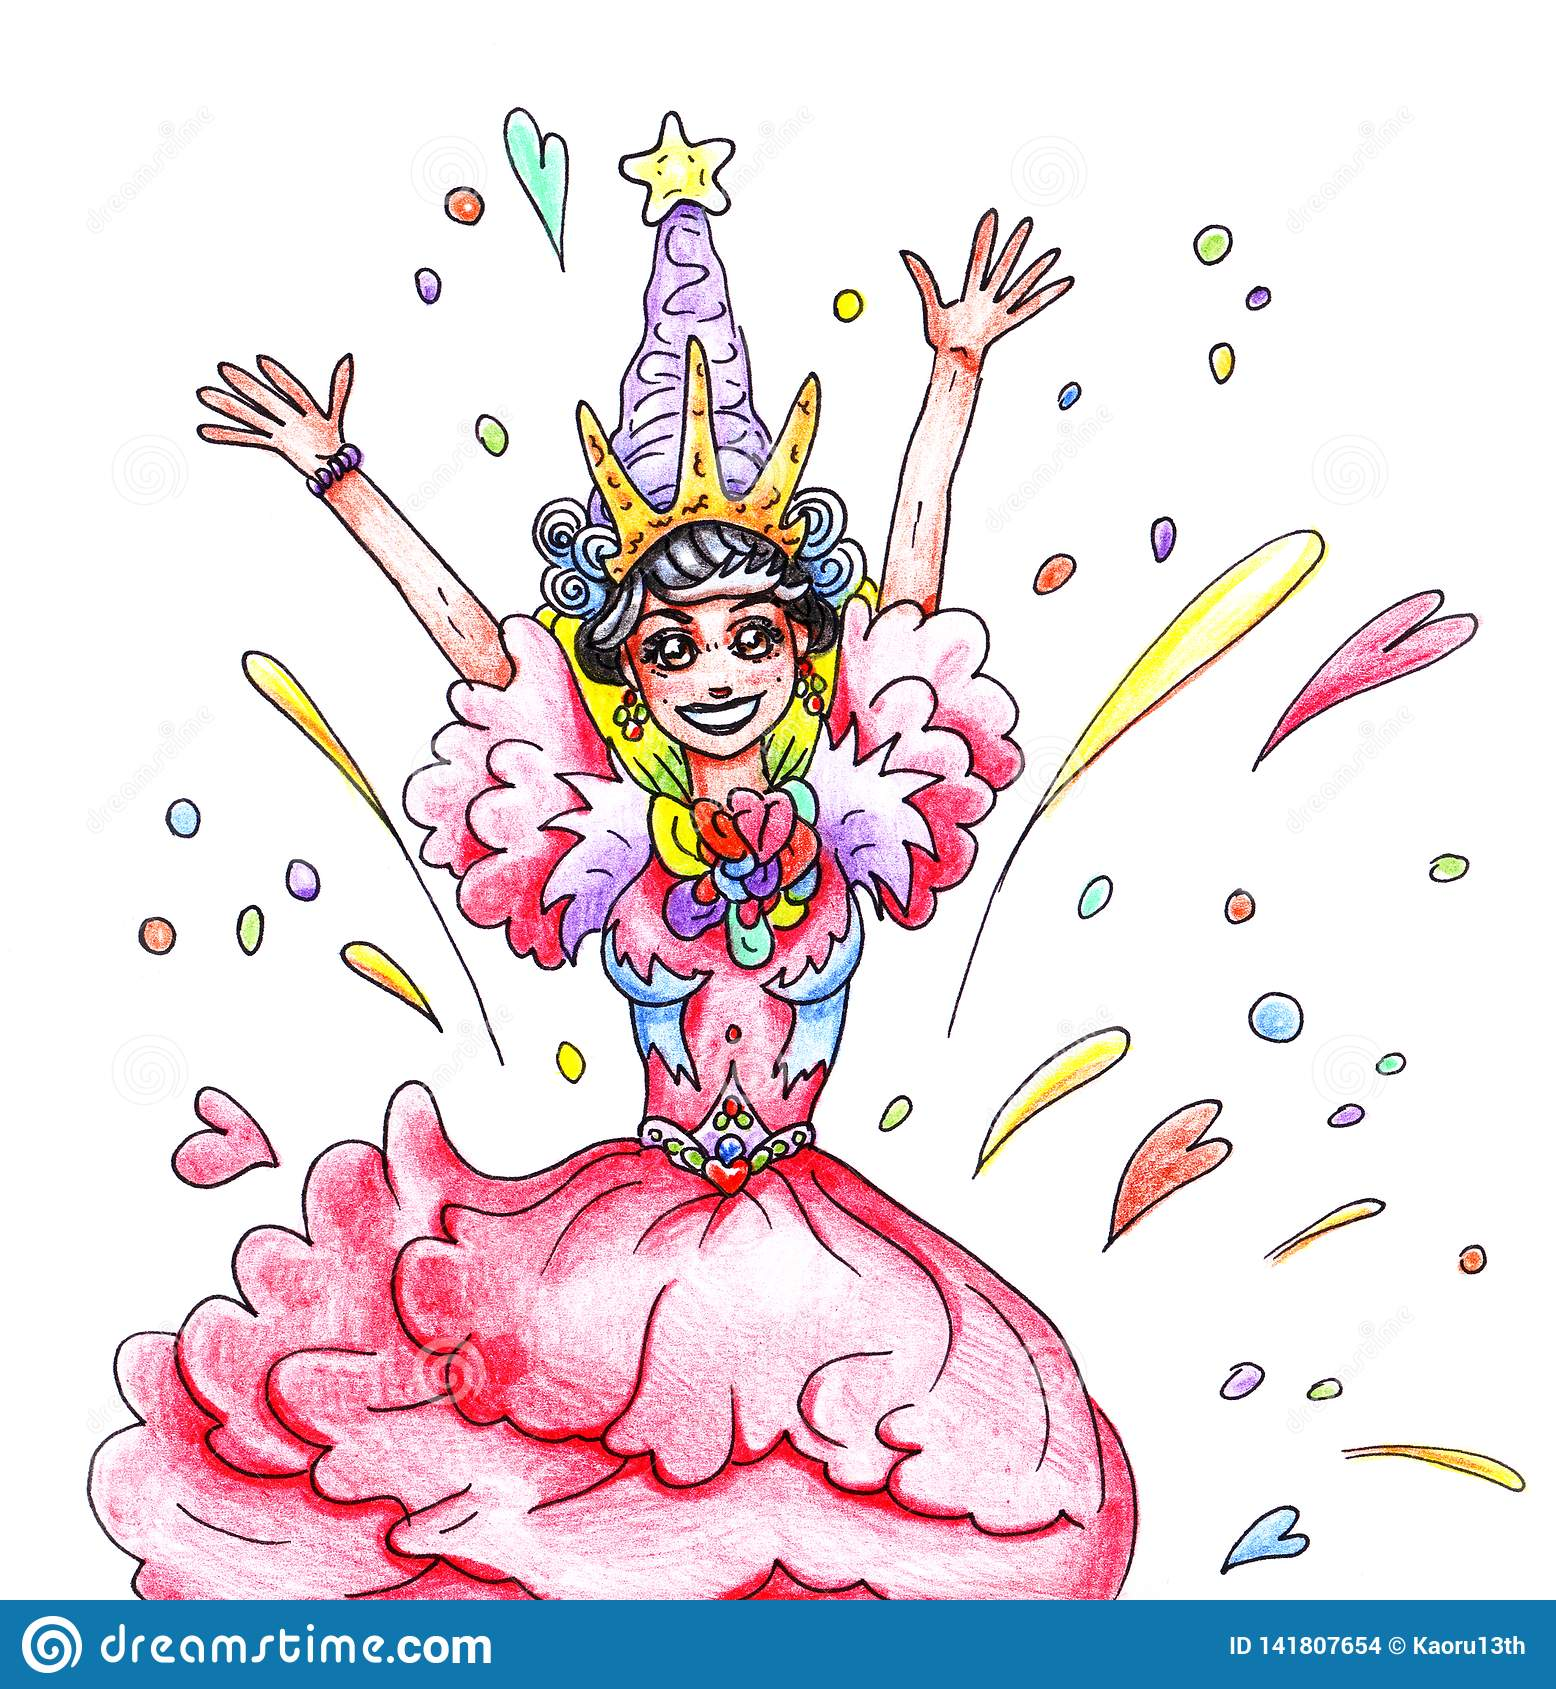 The Drawing Of A Happy Joyful Color Ecstatic With A Smile Of The Princess Girl In A Pink Dress And A Crown On The Holiday Raised Stock Illustration Illustration Of Happy Learn how to draw a crown filled with fun details and amazing visual effects! https www dreamstime com drawing happy joyful color ecstatic smile princess girl pink dress crown holiday raised hand drawn her image141807654